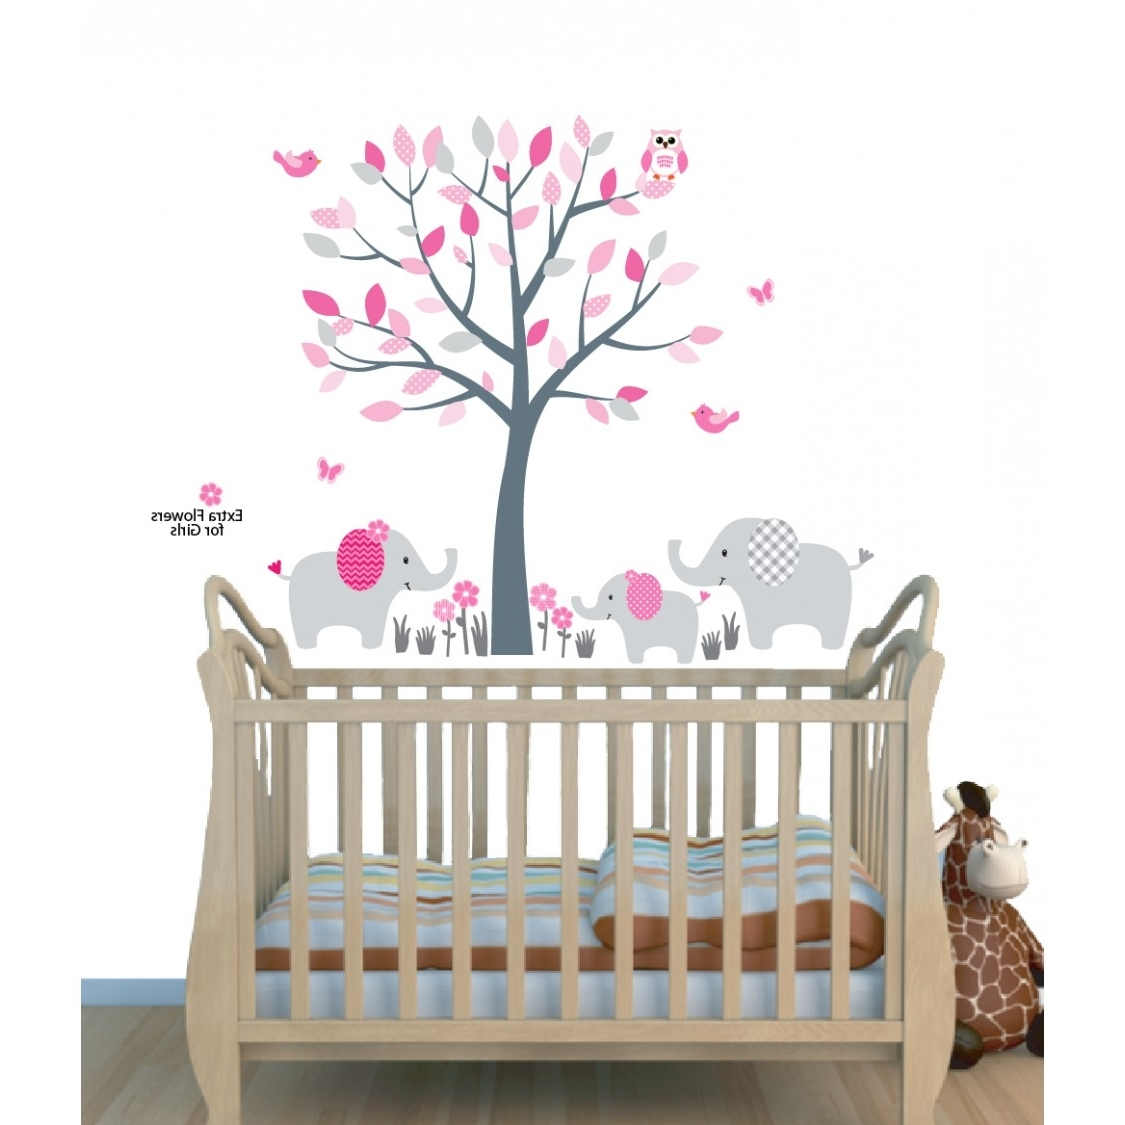 Well Known Pink Jungle Tree Wall Art For Nursery With Elephant Wall Decor For Throughout Elephant Wall Art For Nursery (View 13 of 15)